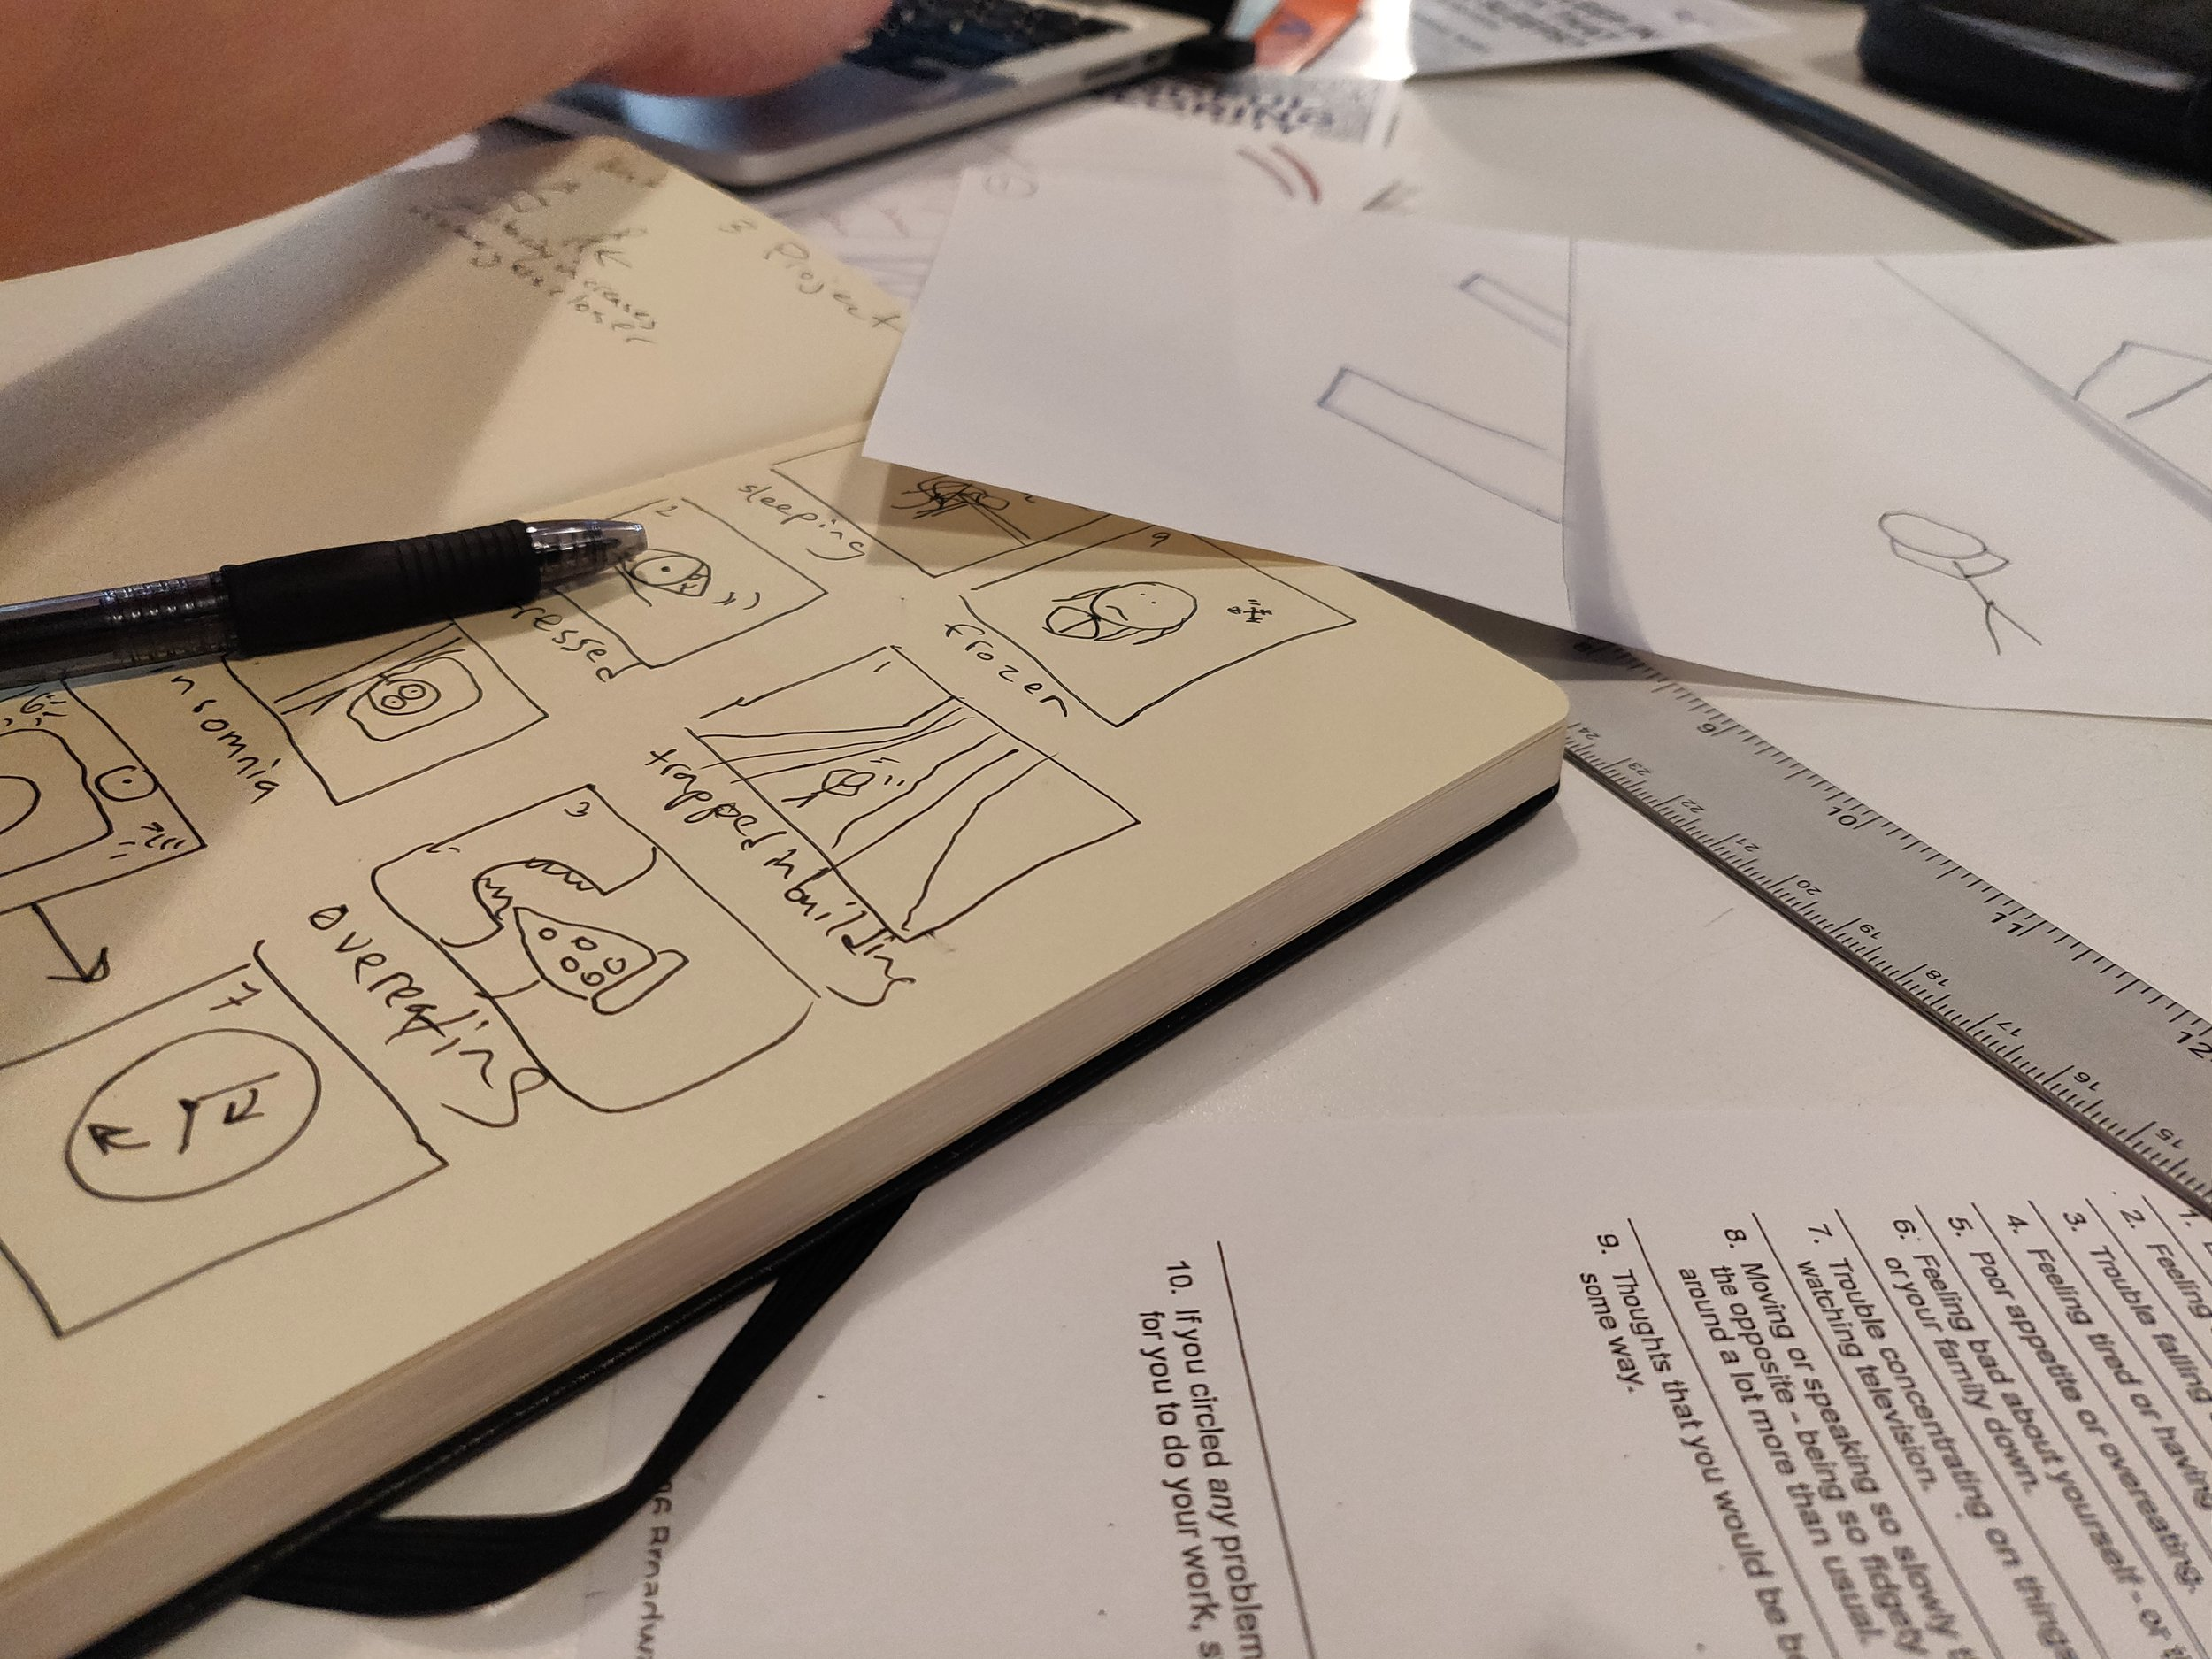 Low fidelity storyboarding using the form as a guide for our scenes